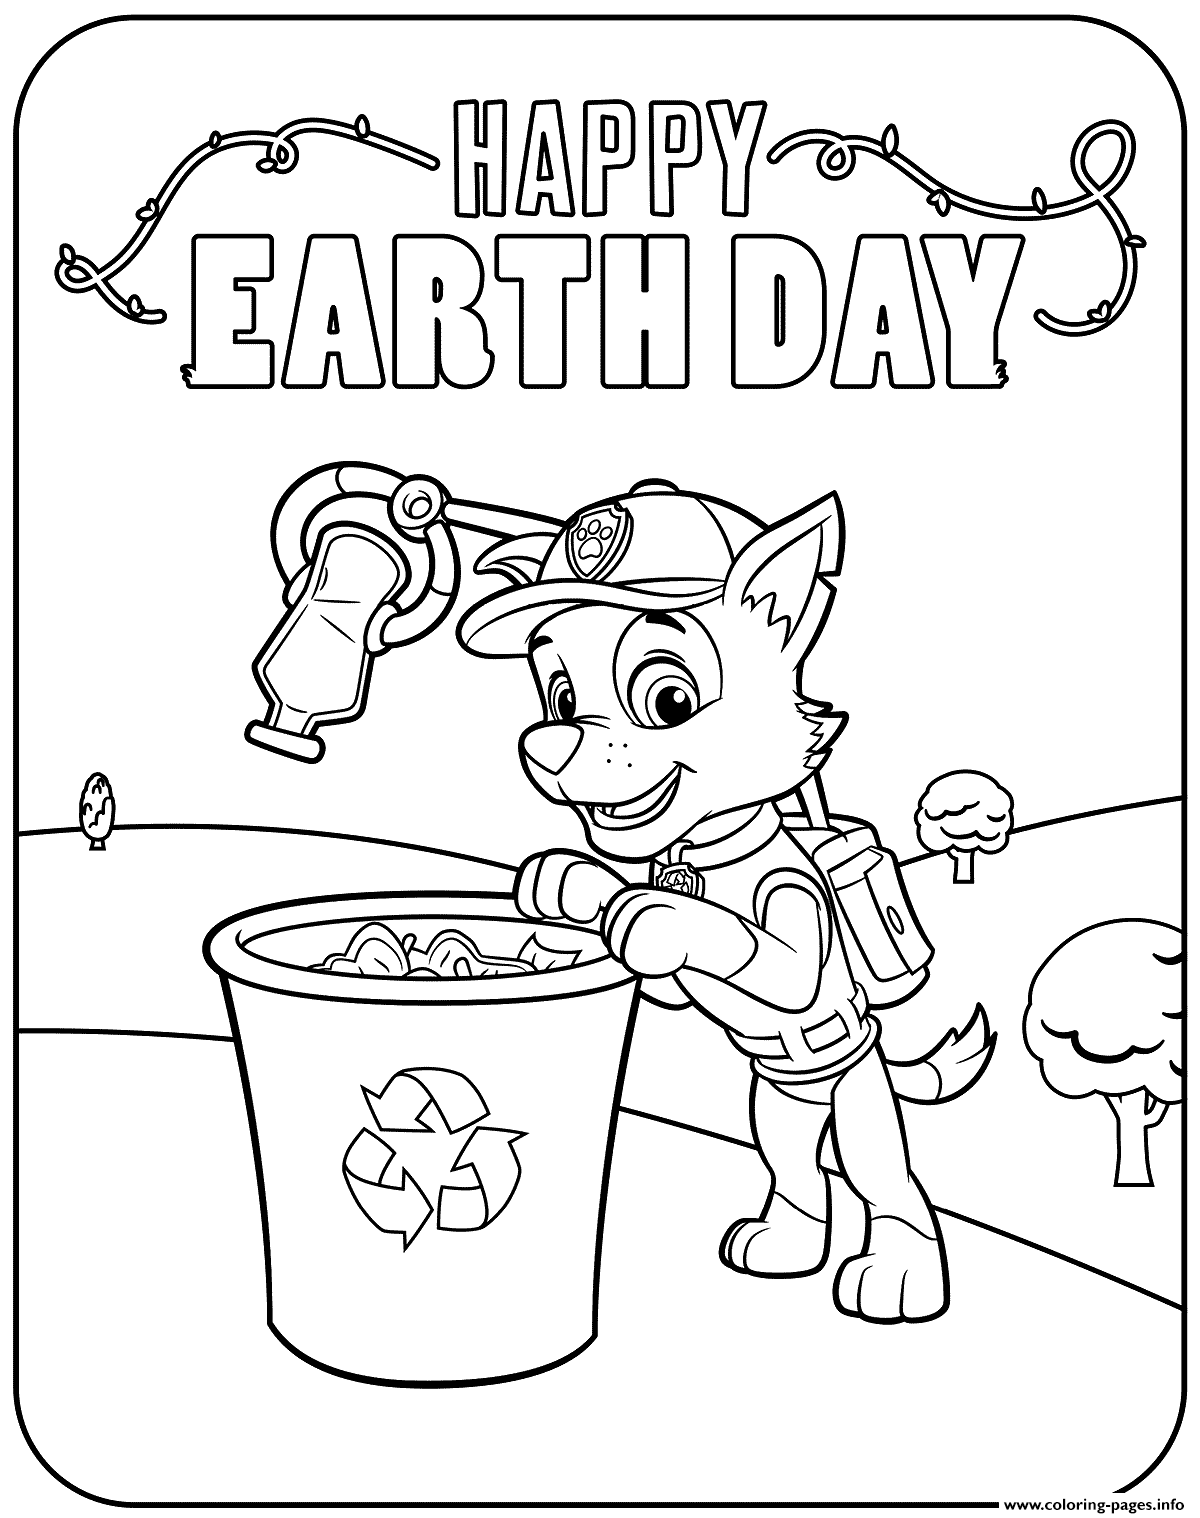 earth day coloring pictures happy earth day coloring pages printable coloring pictures earth day